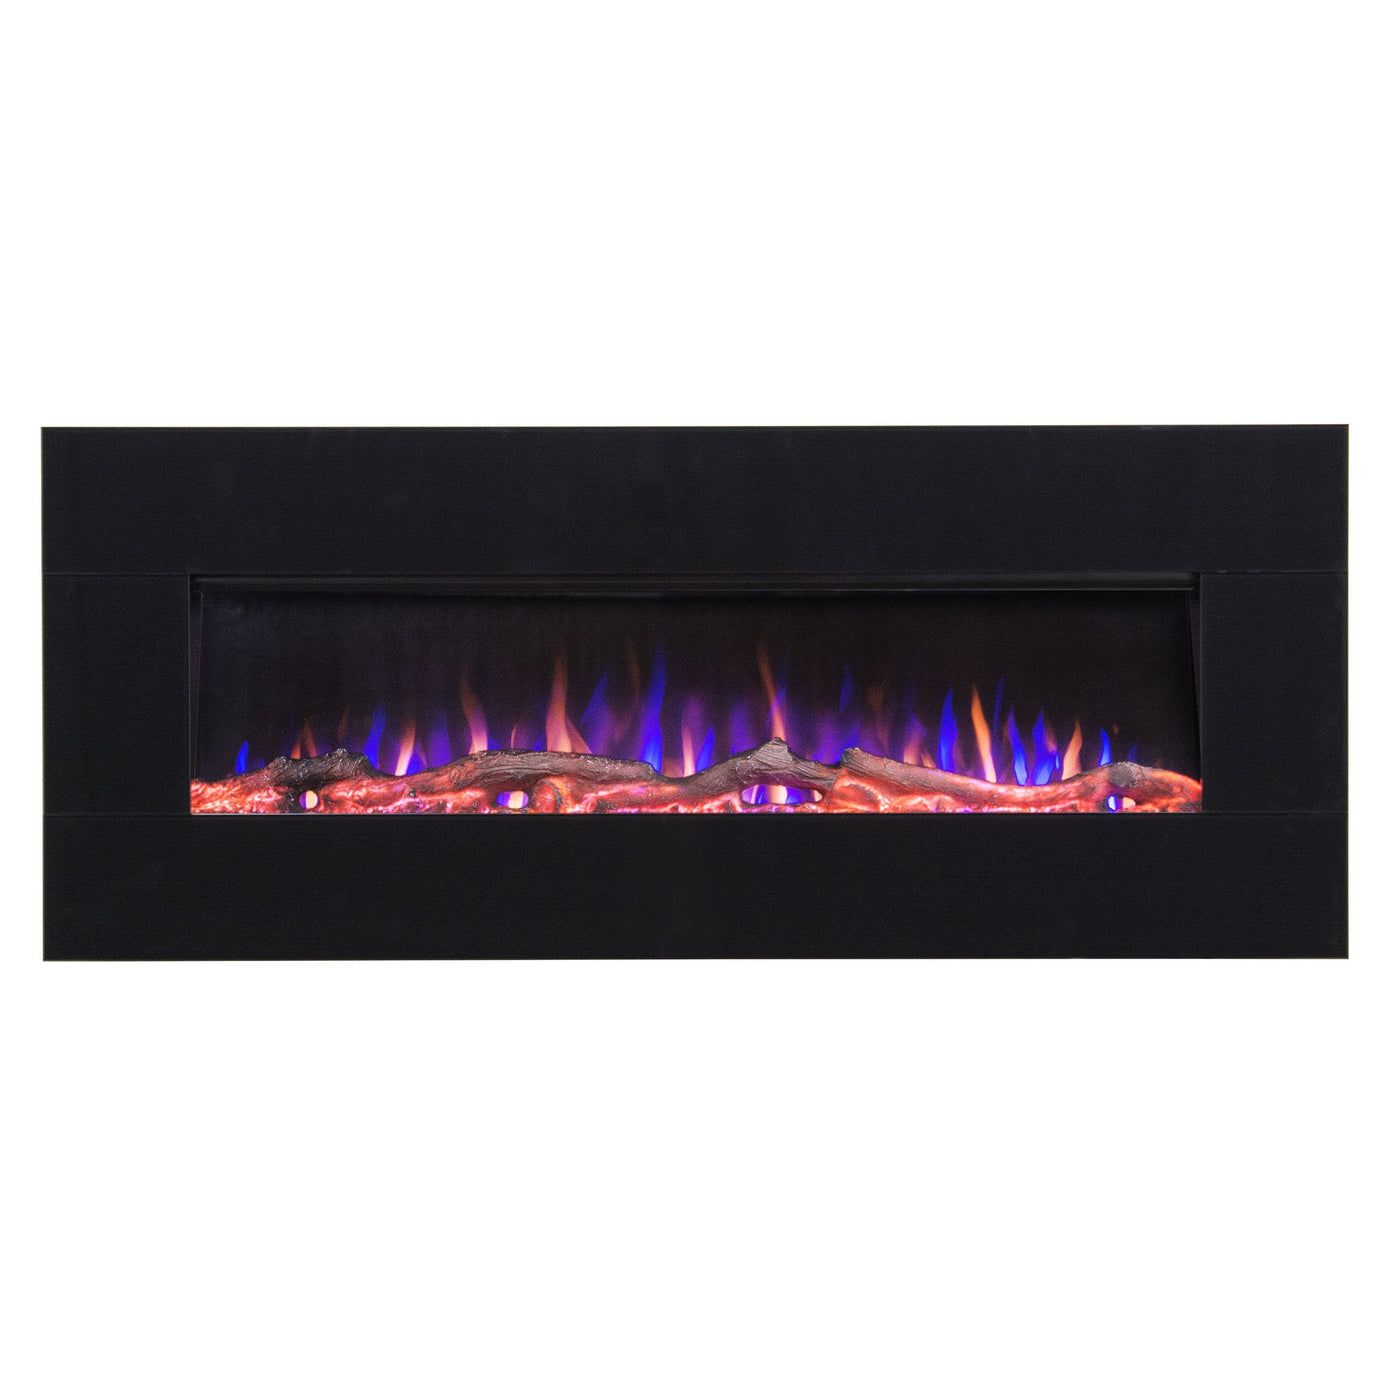 Touchstone 80035 Audioflare Black Glass 50 Recessed Electric